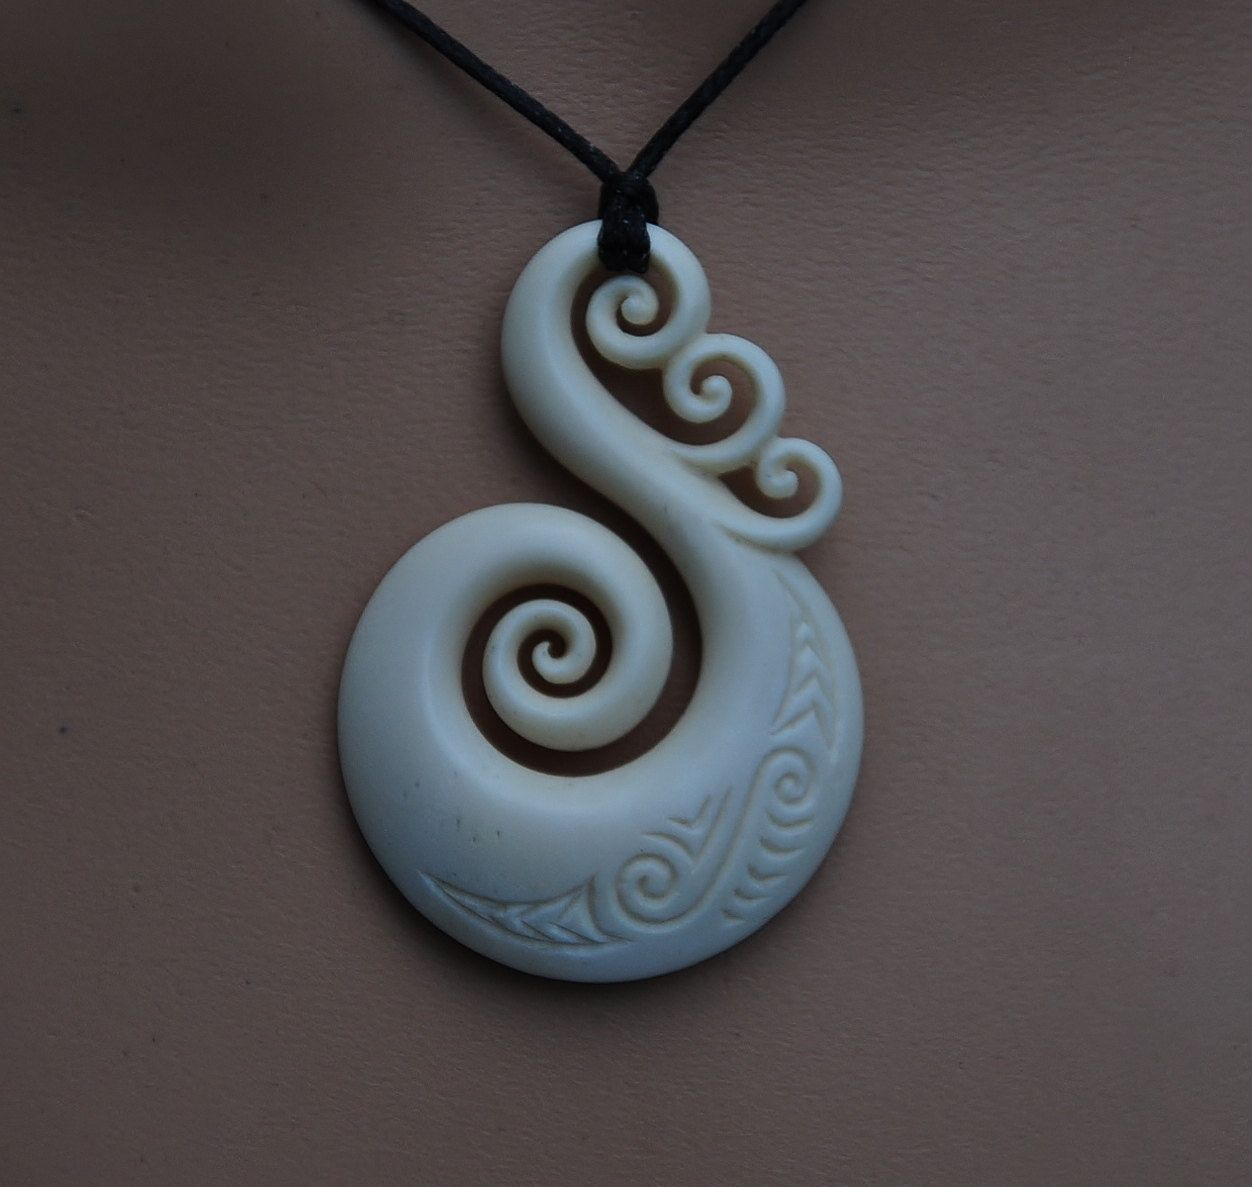 Bone Koru Maori Unity Symbol Hand Carved And Engraved Quilled Jewellery Ceramics Pottery Art Carving